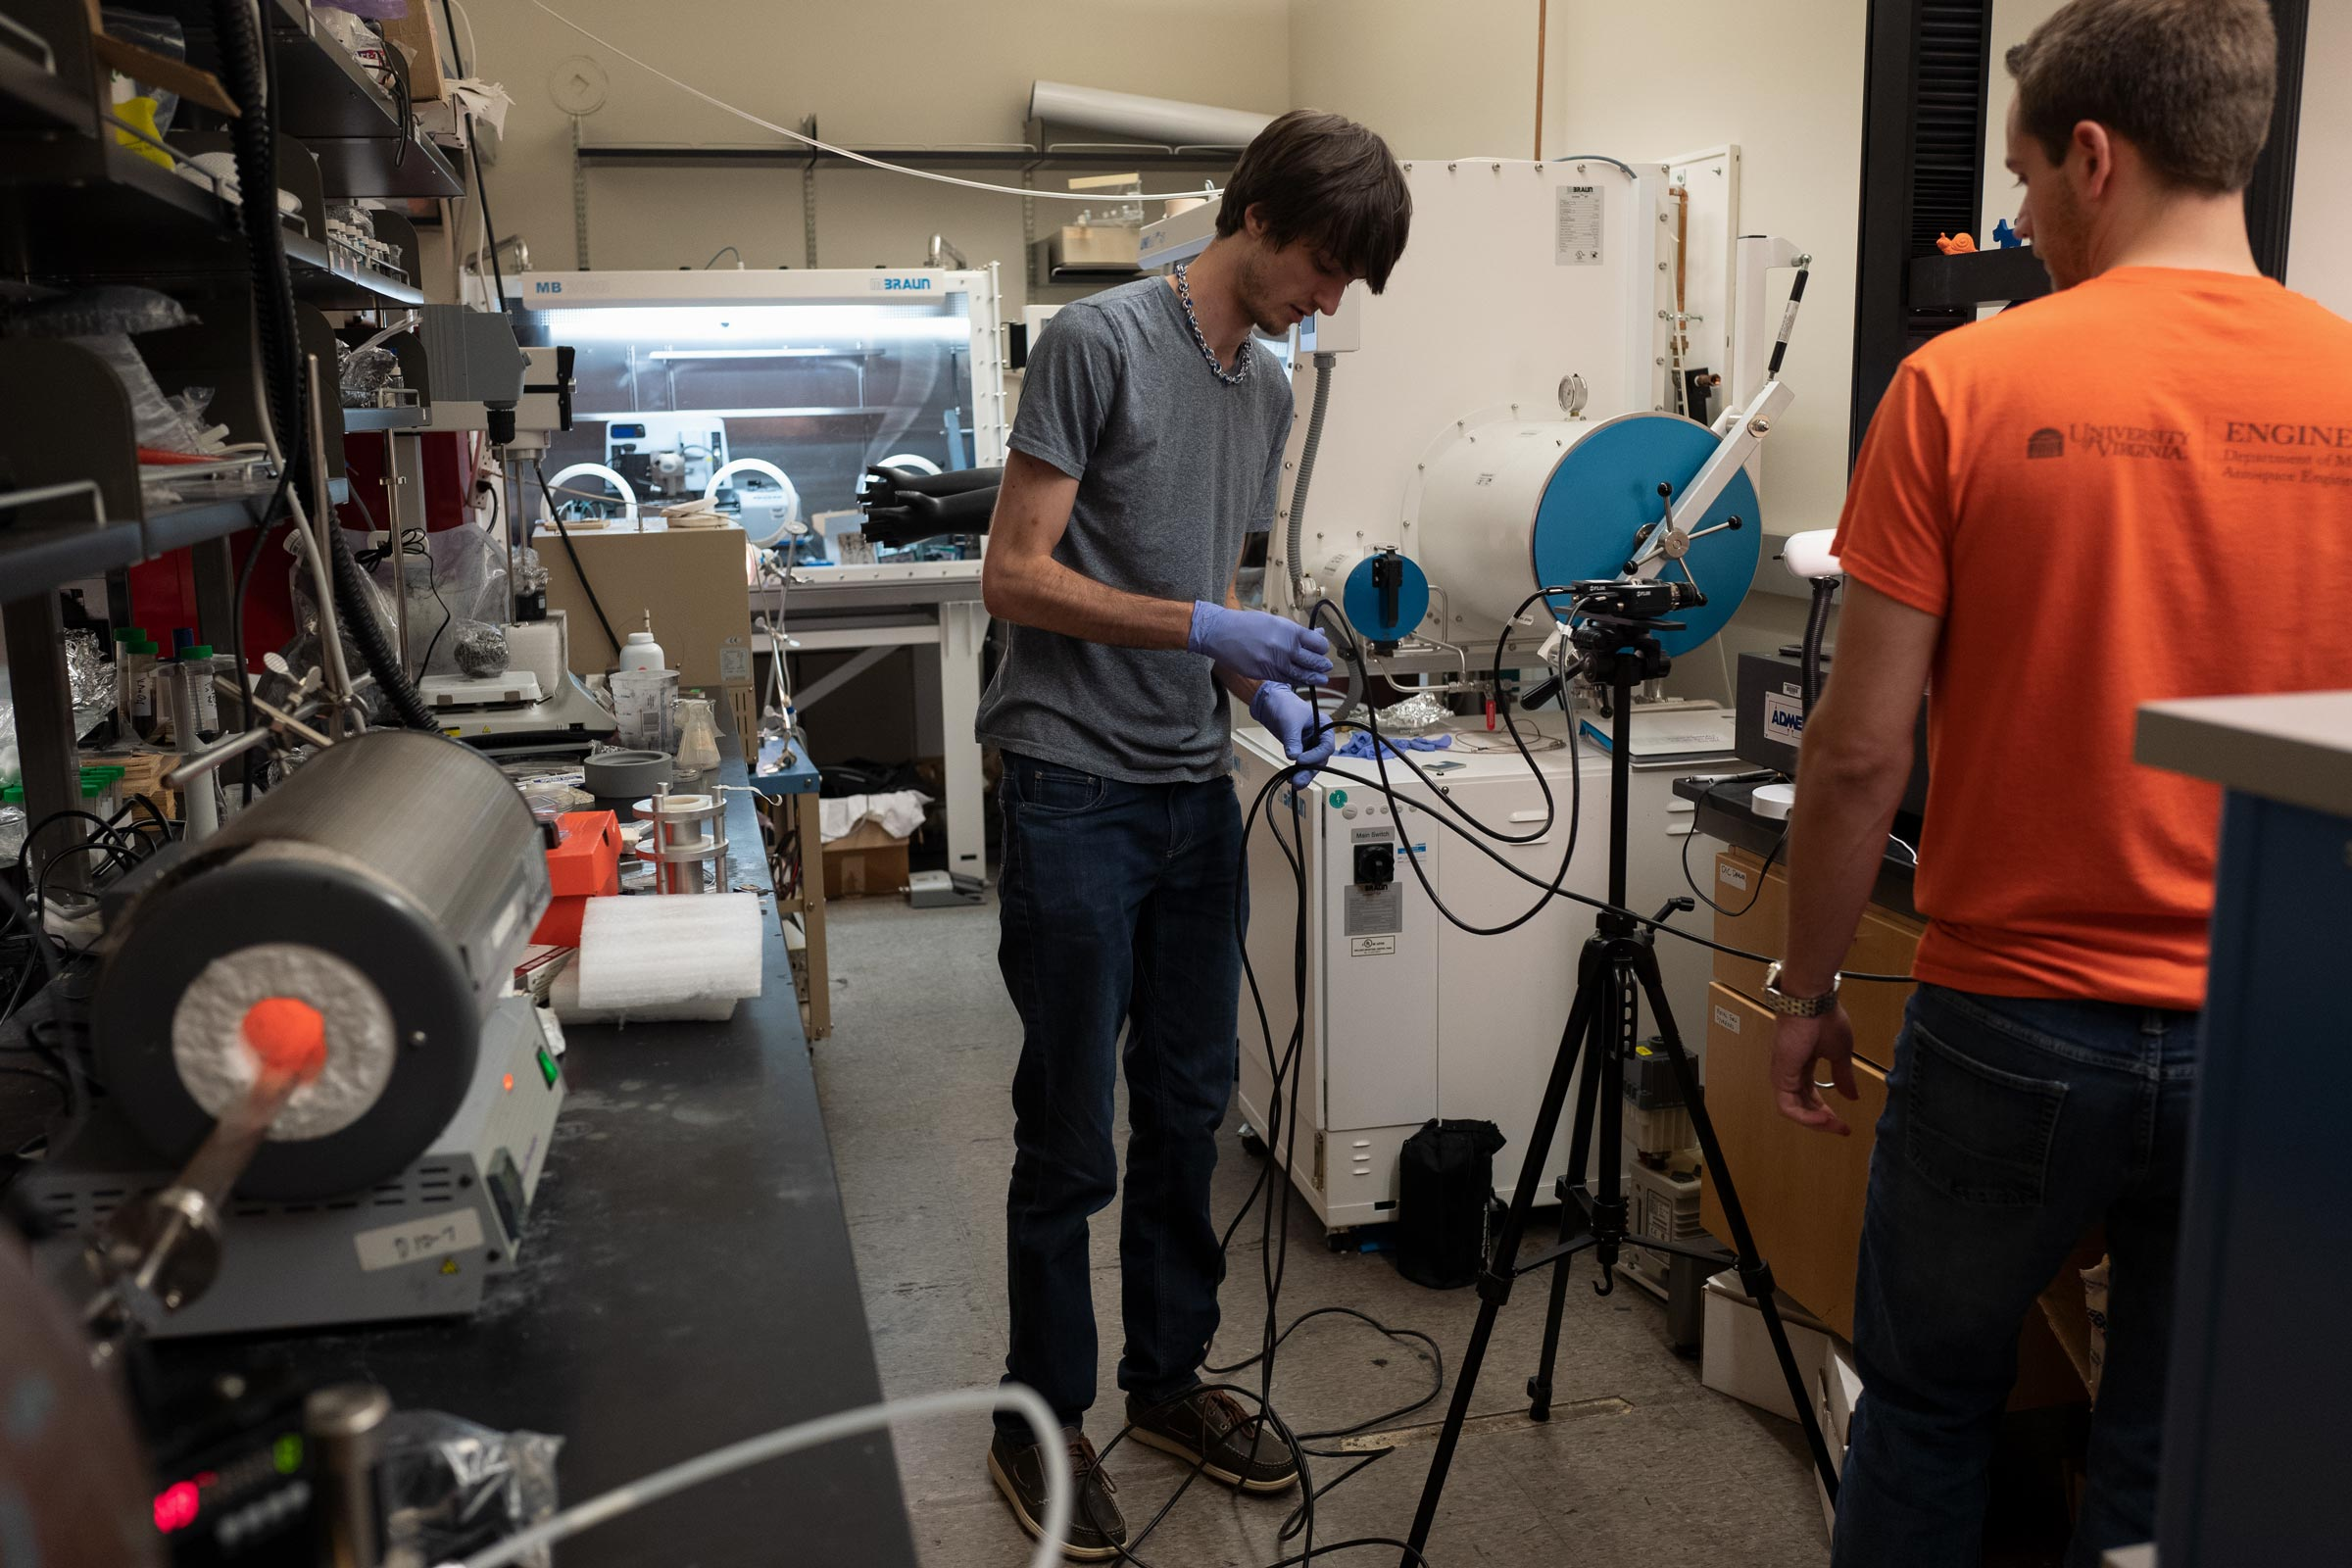 Engineering Ph.D. students Oliver Holzmond and Jamison Bartlett calibrate a sensor that will use video and their computer code to analyze 3-D printed material for imperfections. (Photo by Christopher Tyree)